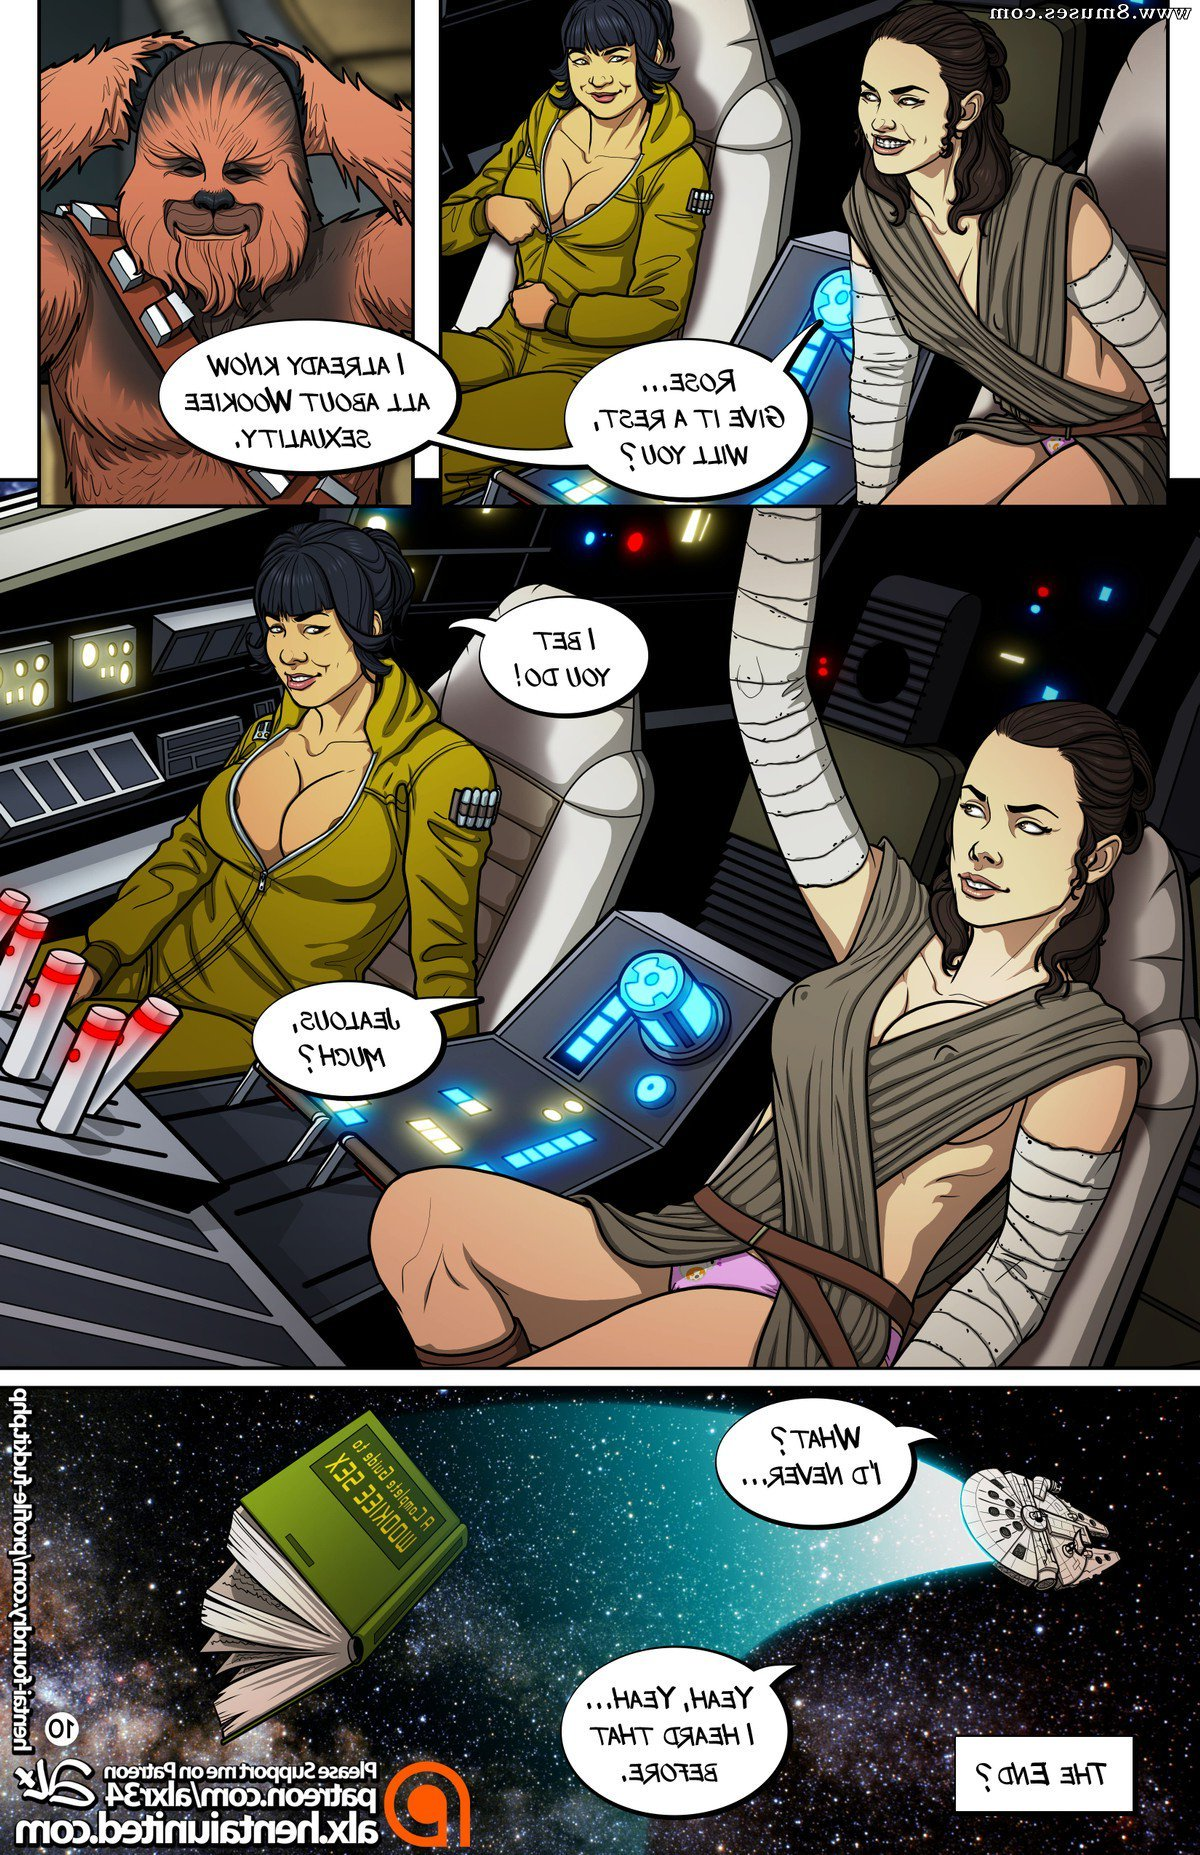 Fuckit-Alx-Comics/A-Complete-Guide-to-Wookie-Sex/Issue-1 A_Complete_Guide_to_Wookie_Sex_-_Issue_1_11.jpg